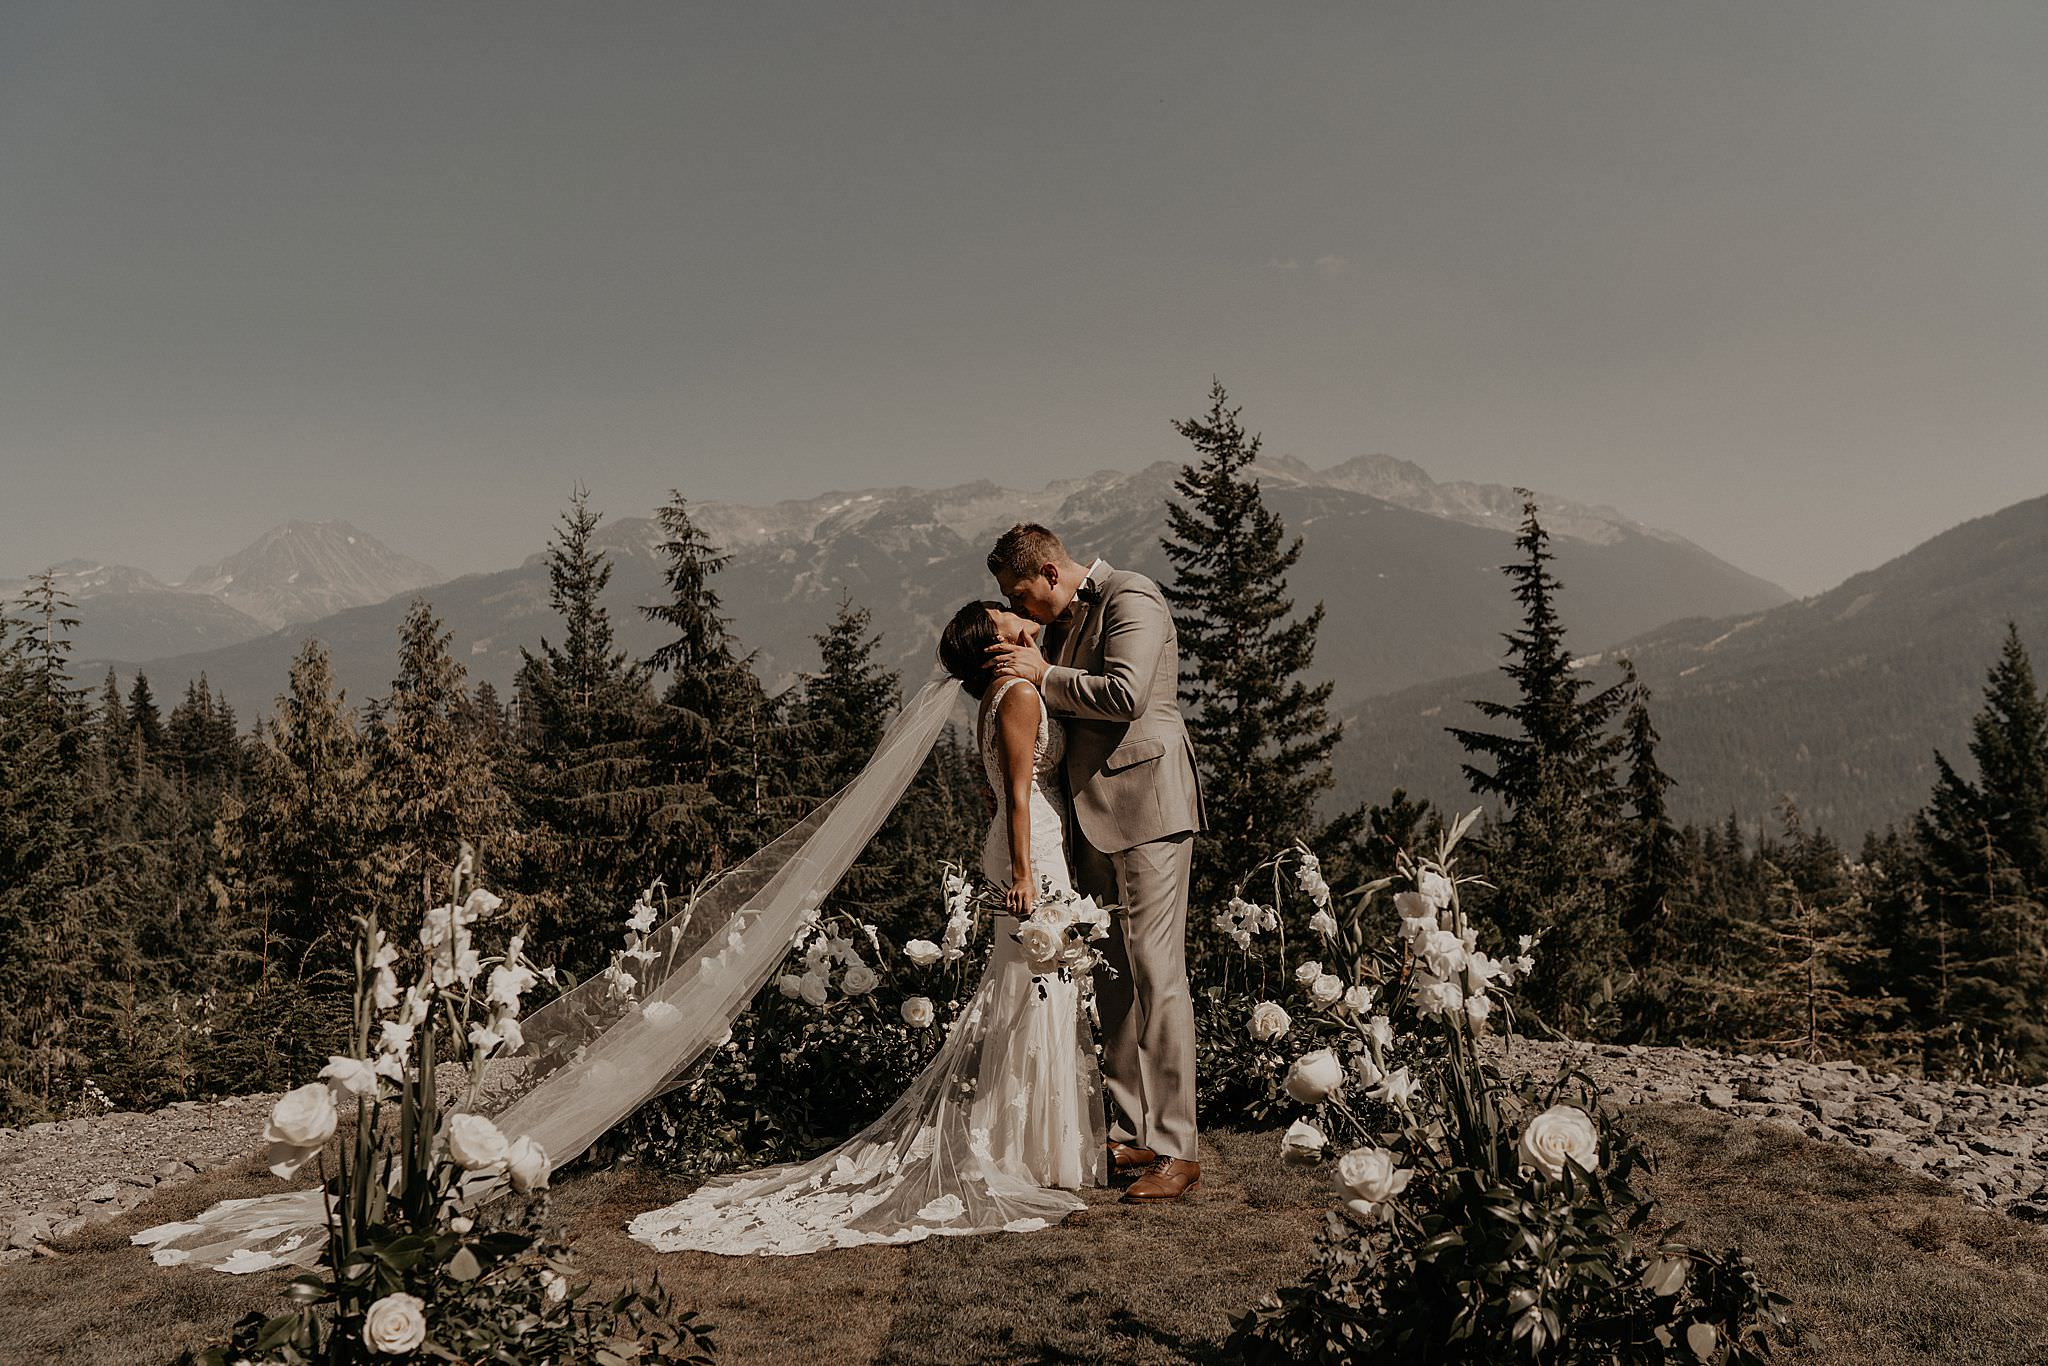 whistler-mountain-helicopter-elopement-wedding_0072.jpg